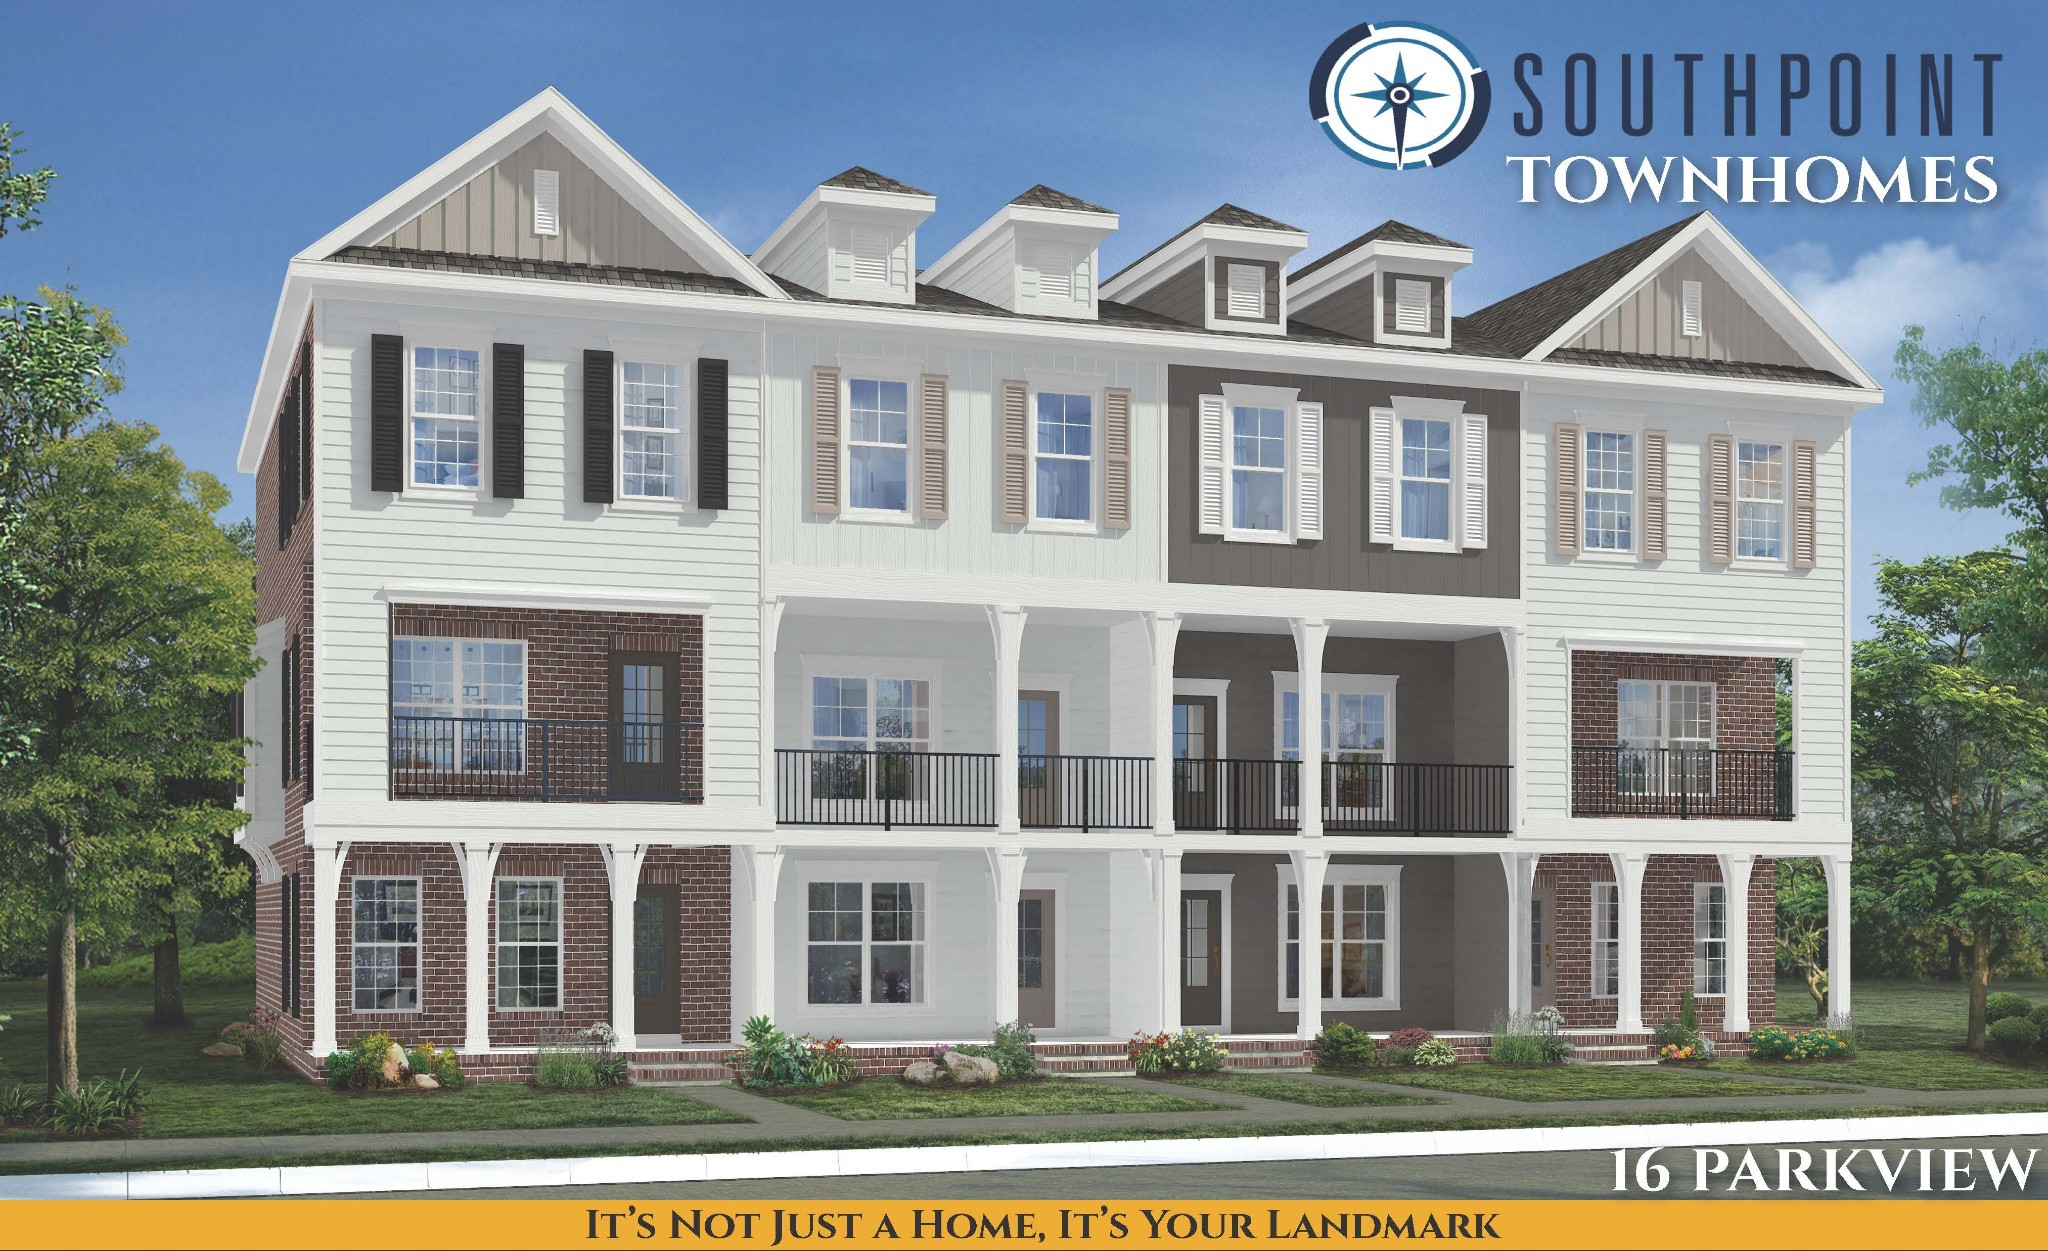 Come see Brentwood's newest luxury townhomes at Southpoint! Each unit features 3-level living with 2-car garages and customizable luxury finishes! Walkable community adjacent to brand new shopping center and restaurants/retail. Be sure to ask about current Buyer Incentives running thru the end of August!